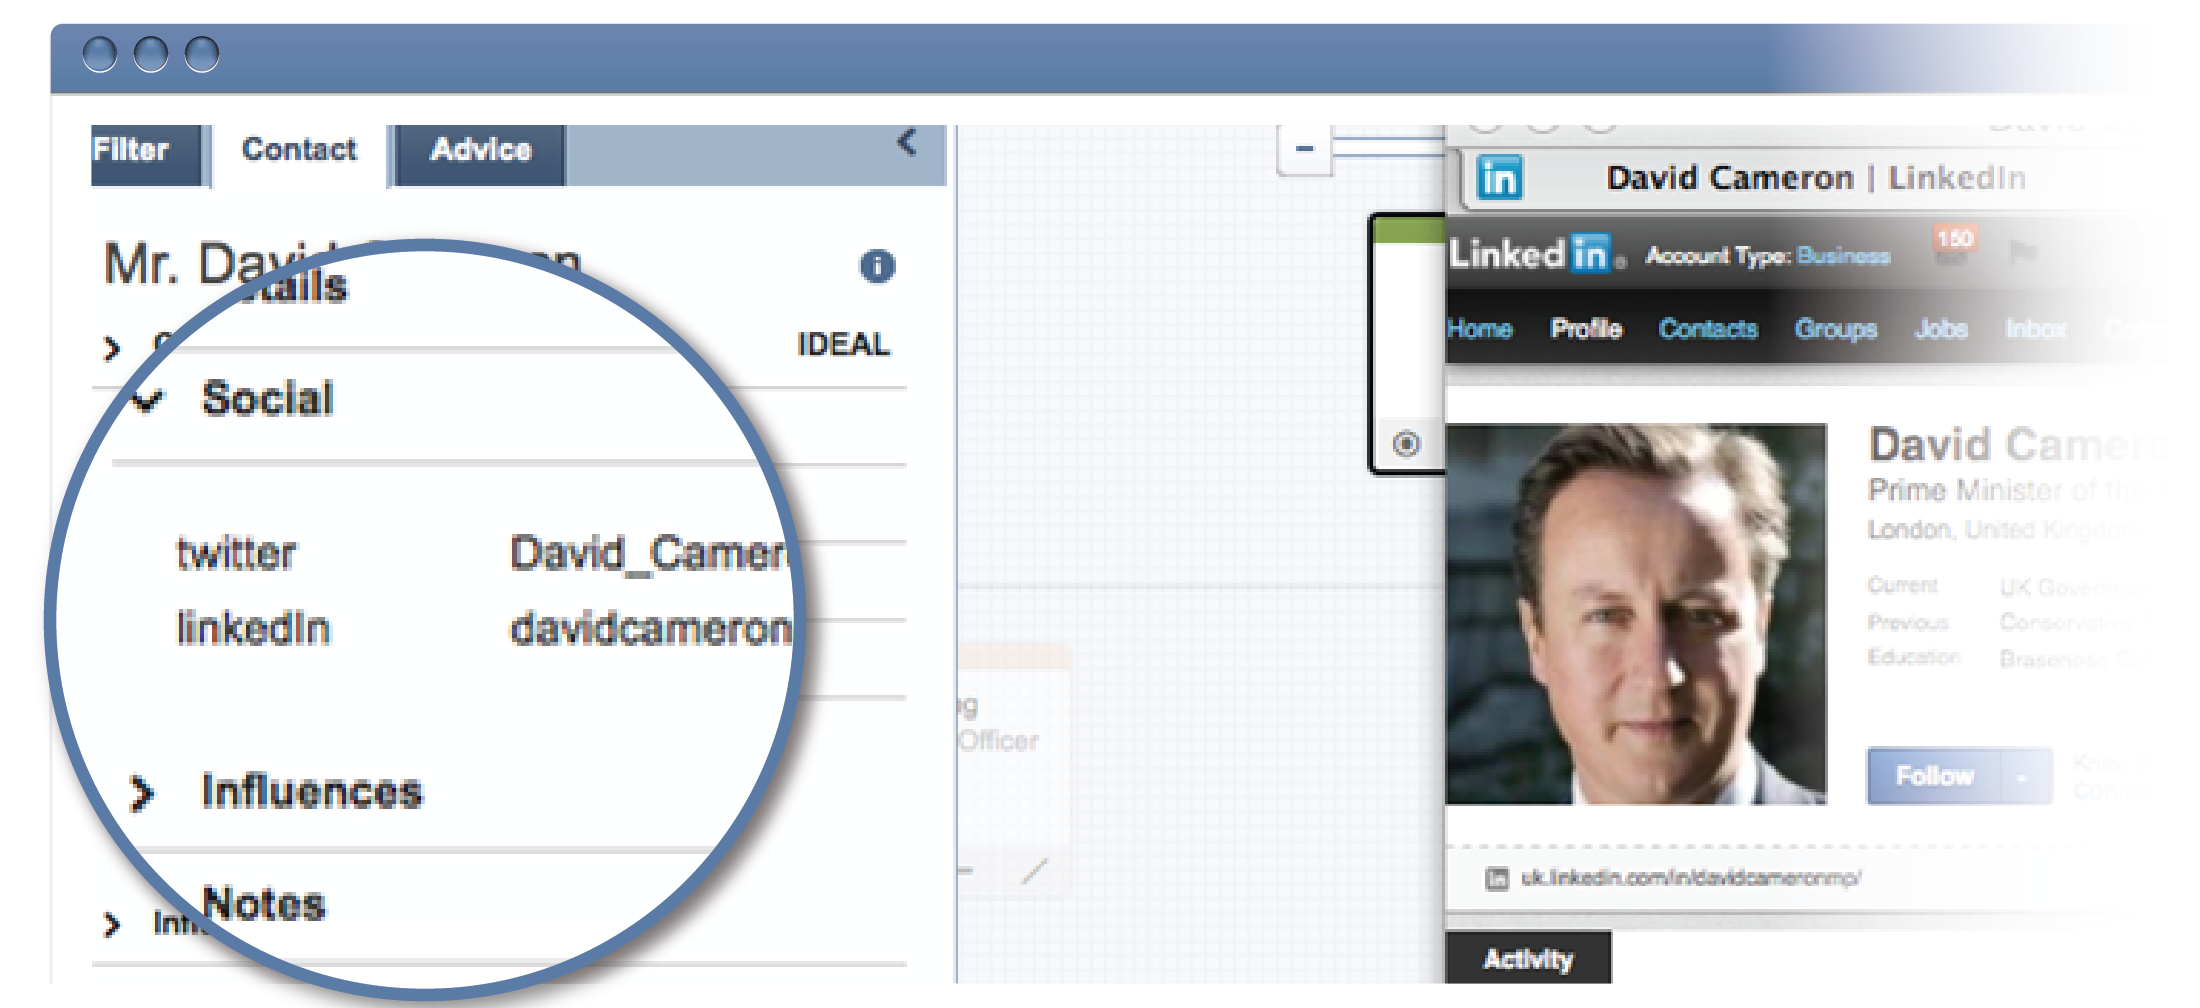 Easy Access to LinkedIn or Twitter for Each Contact